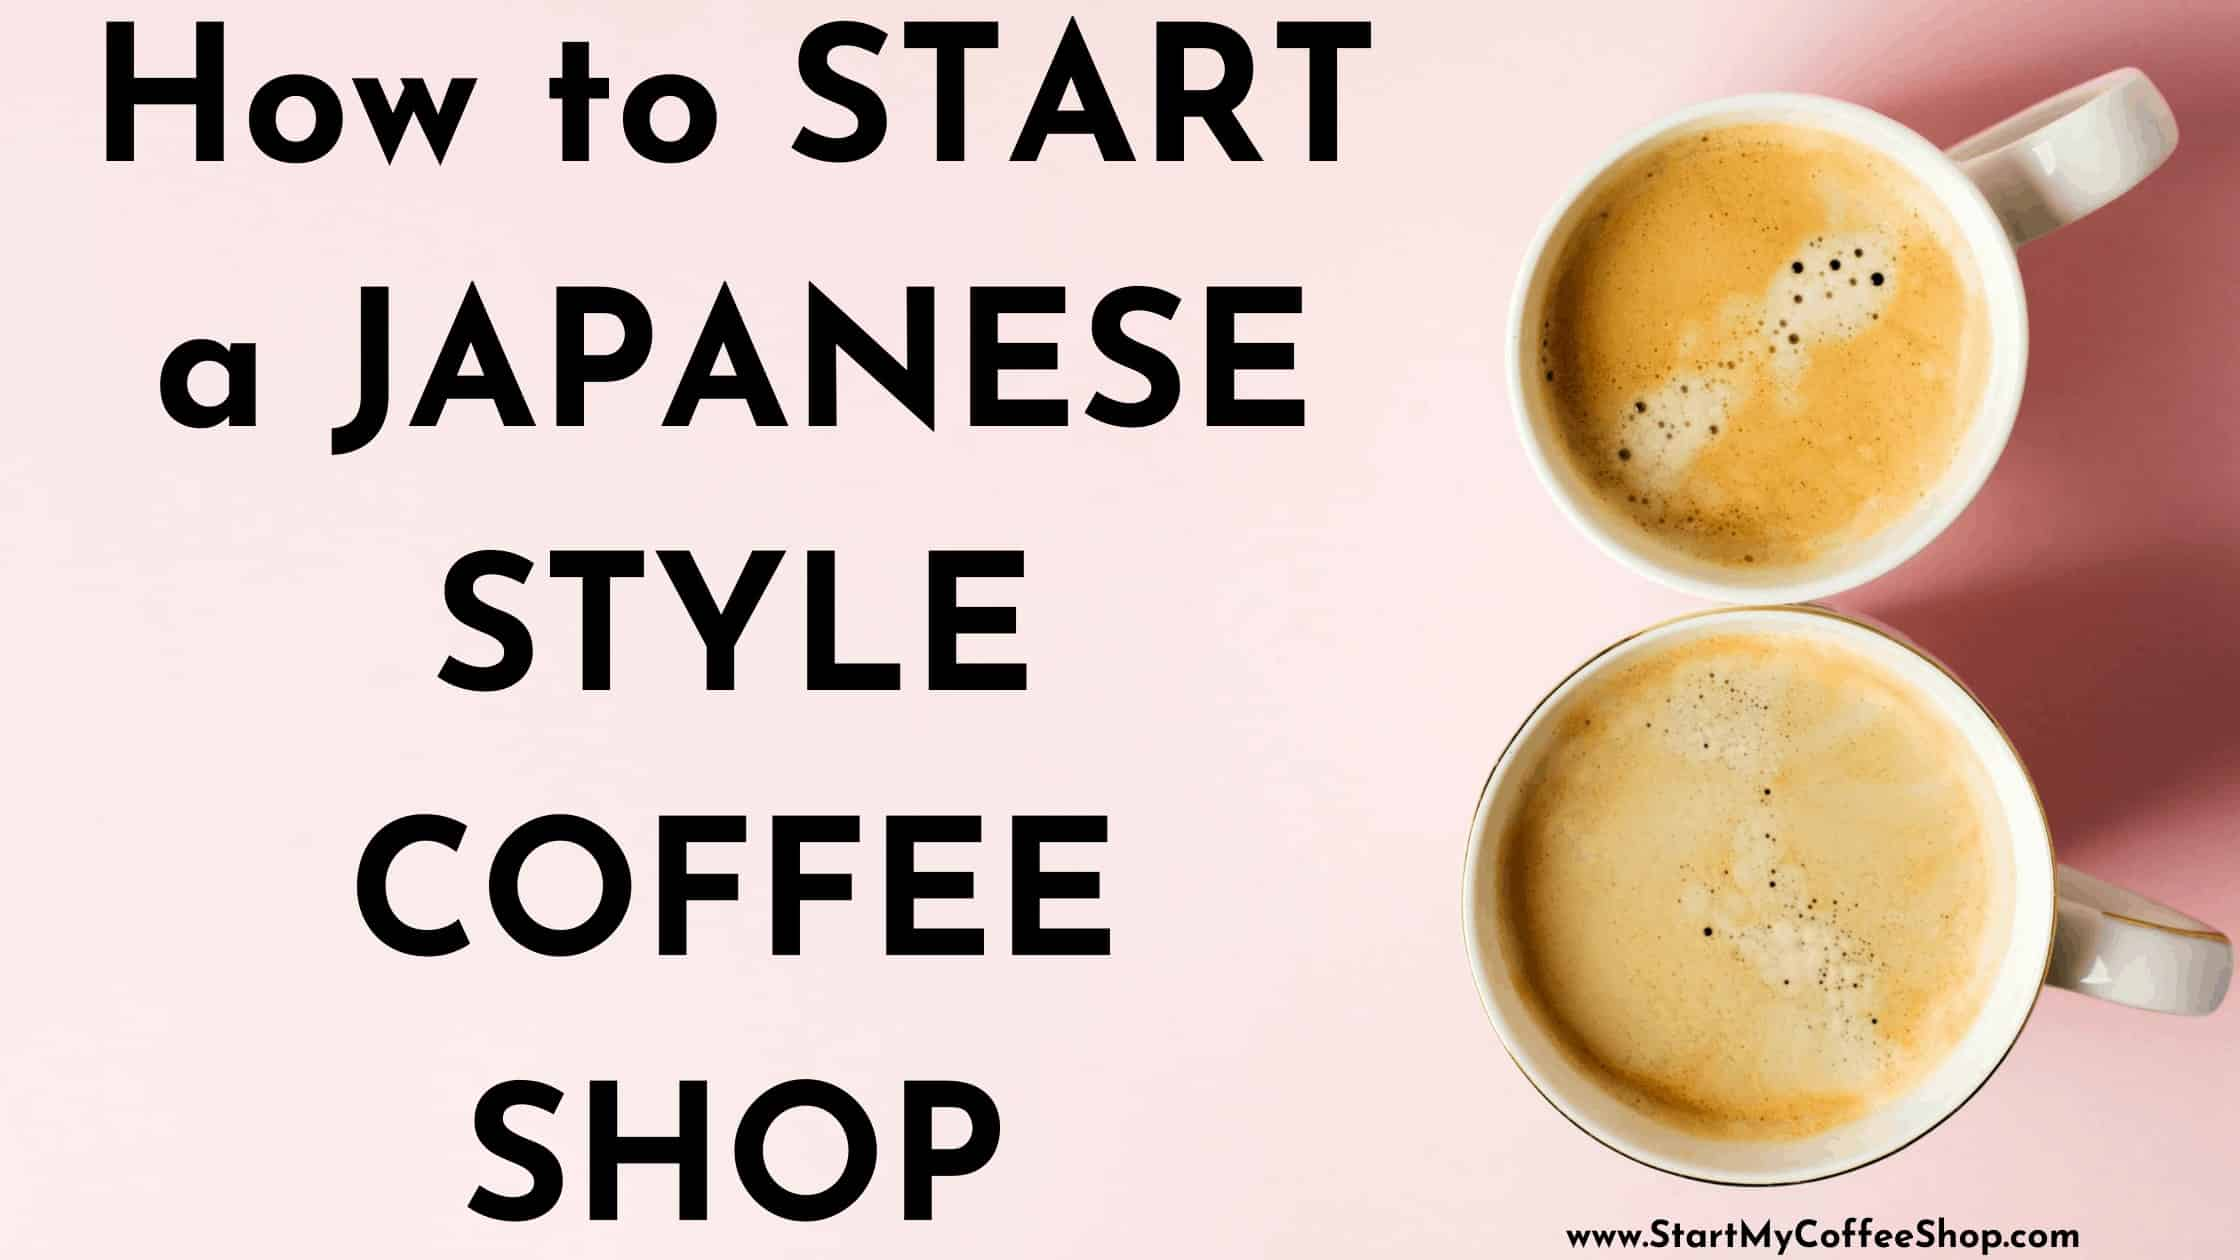 How to start a Japanese-style coffee shop